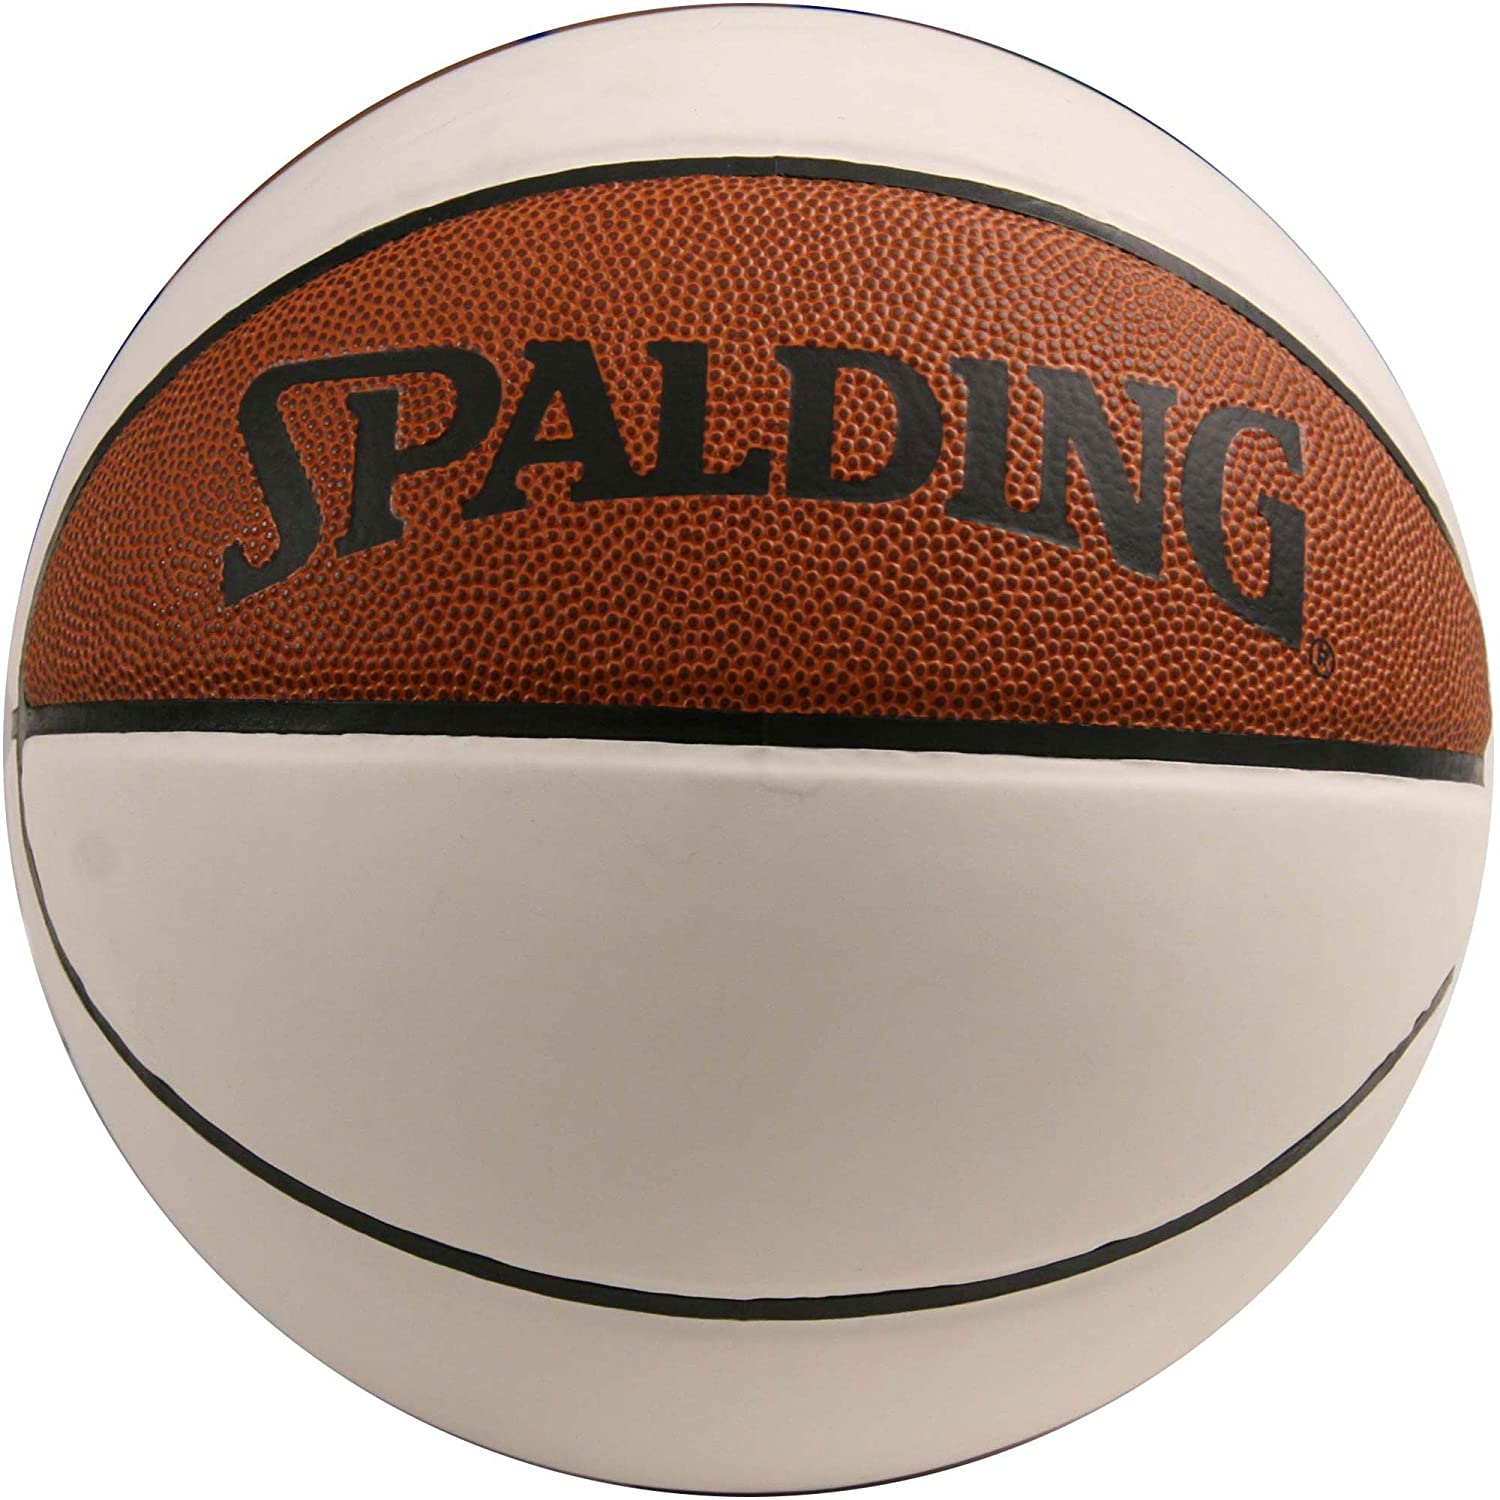 Spalding Nba 3 Panel Autograph Basketball (29.5) B0000AE6Q3